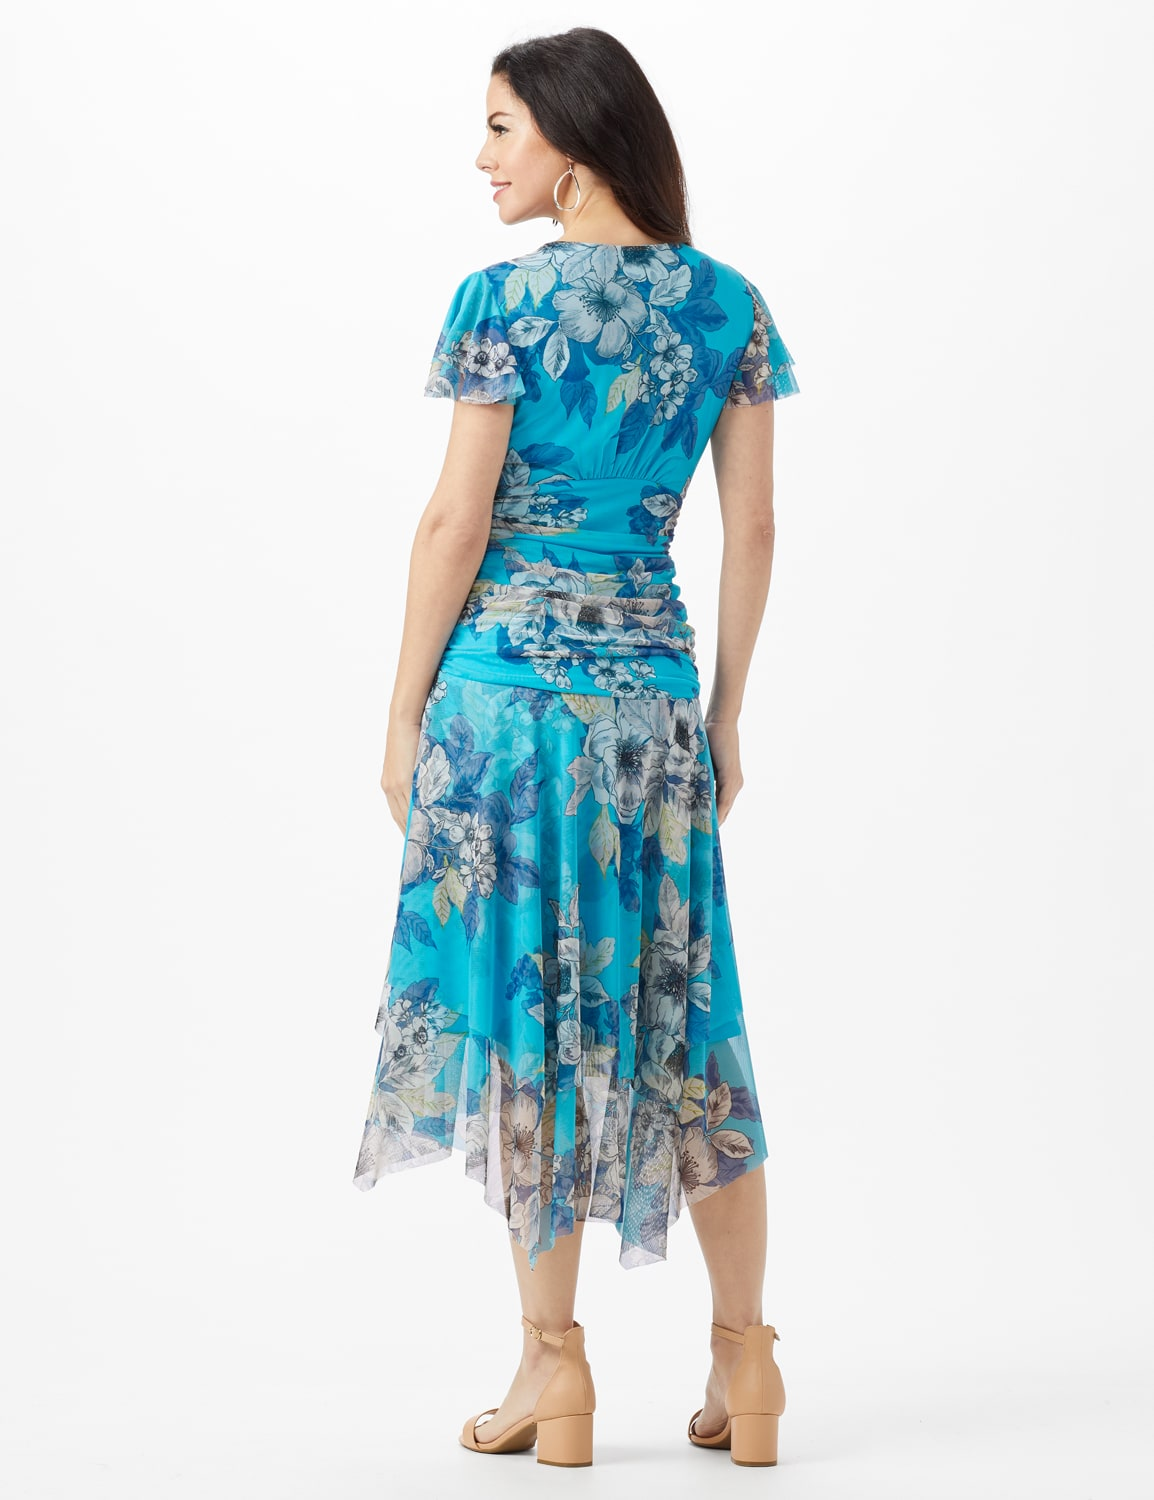 Mesh Floral Drape Neck Gathered Waist with Side Tie - Turq/Sand - Back